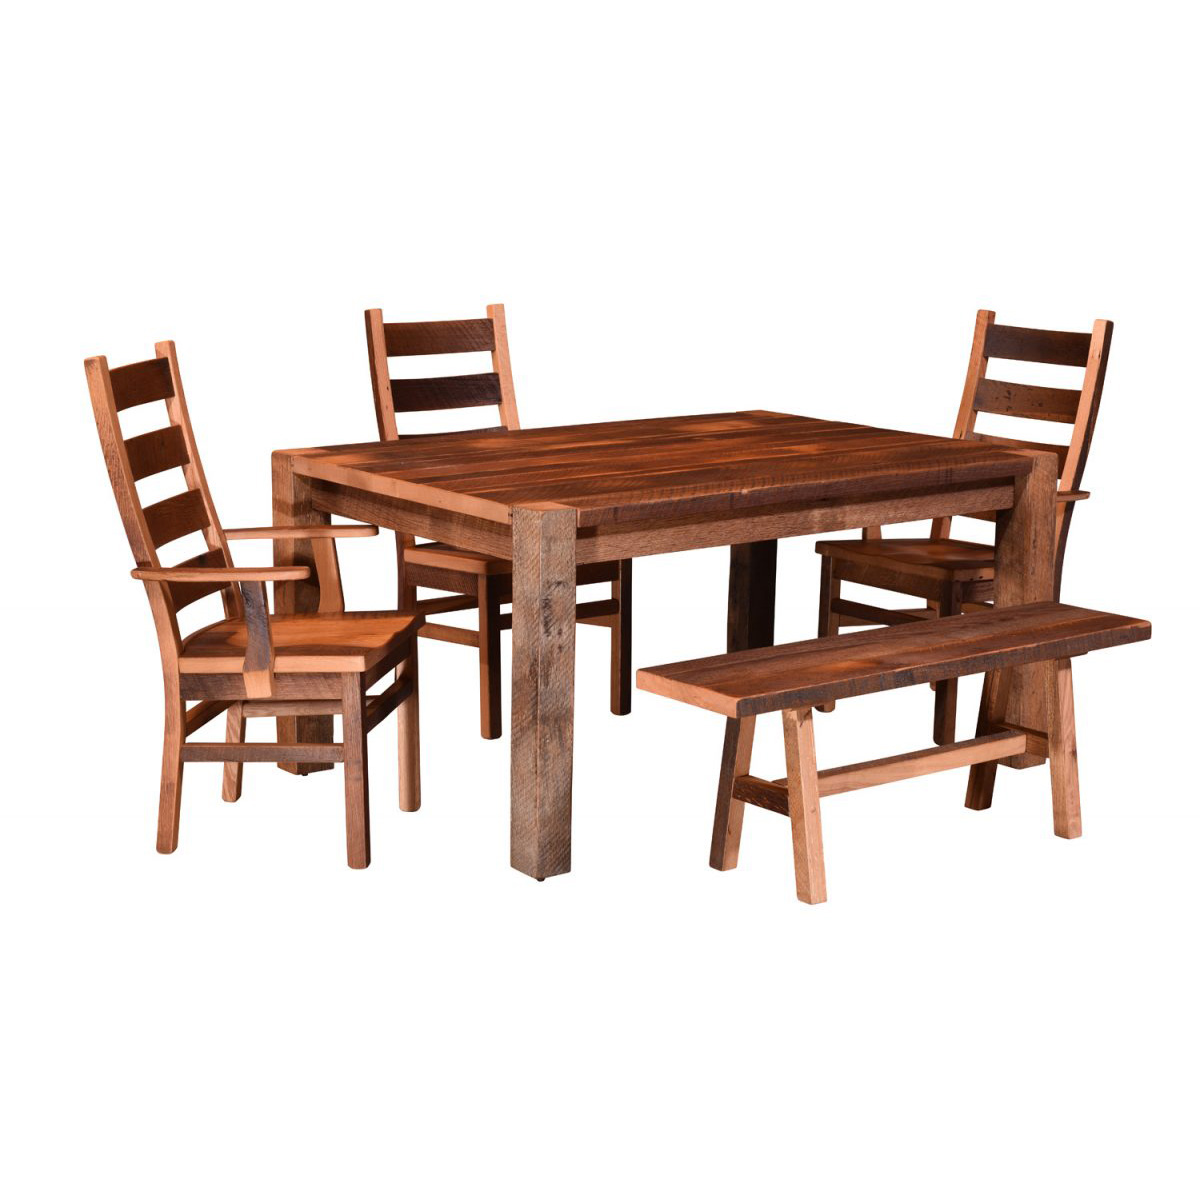 barnwood dining room chairs school desk timber ridge table amish crafted furniture